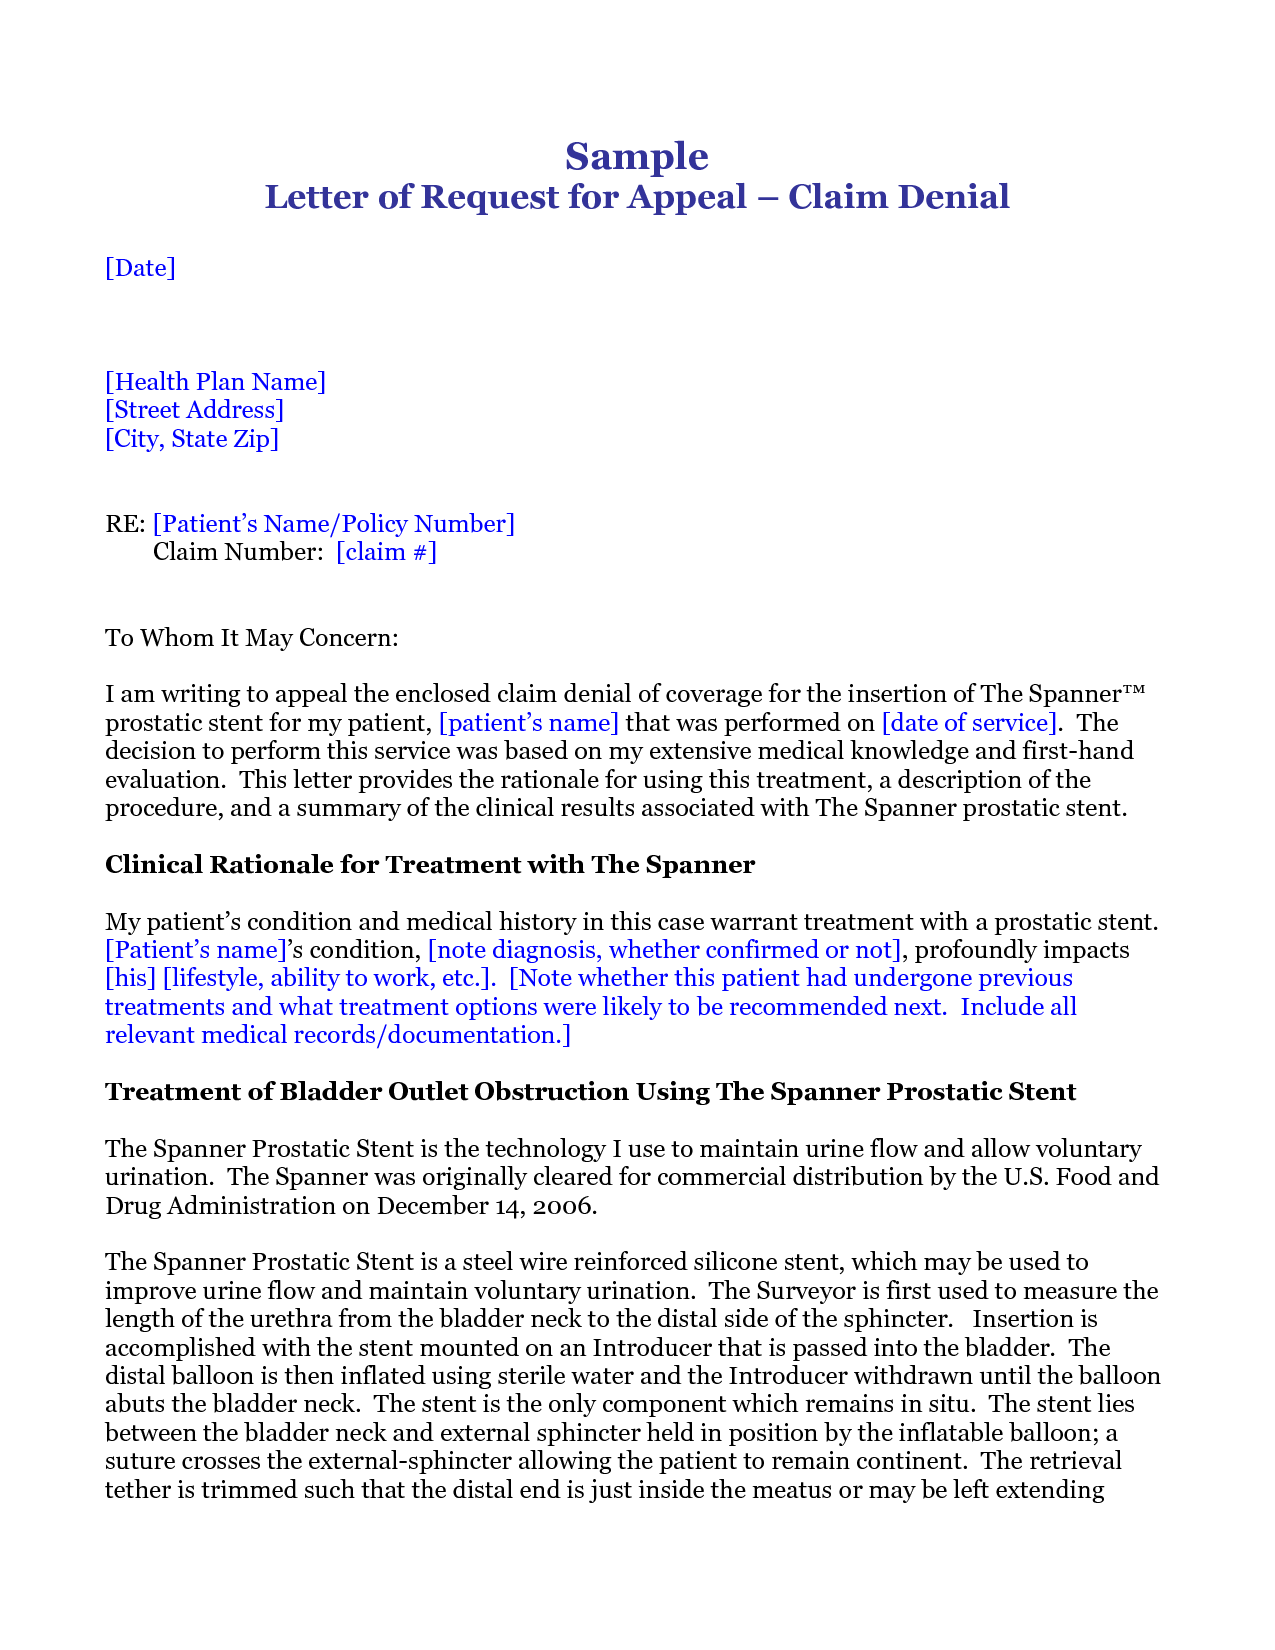 Medical Claim Appeal Letter Insurance Sample How Write Cover